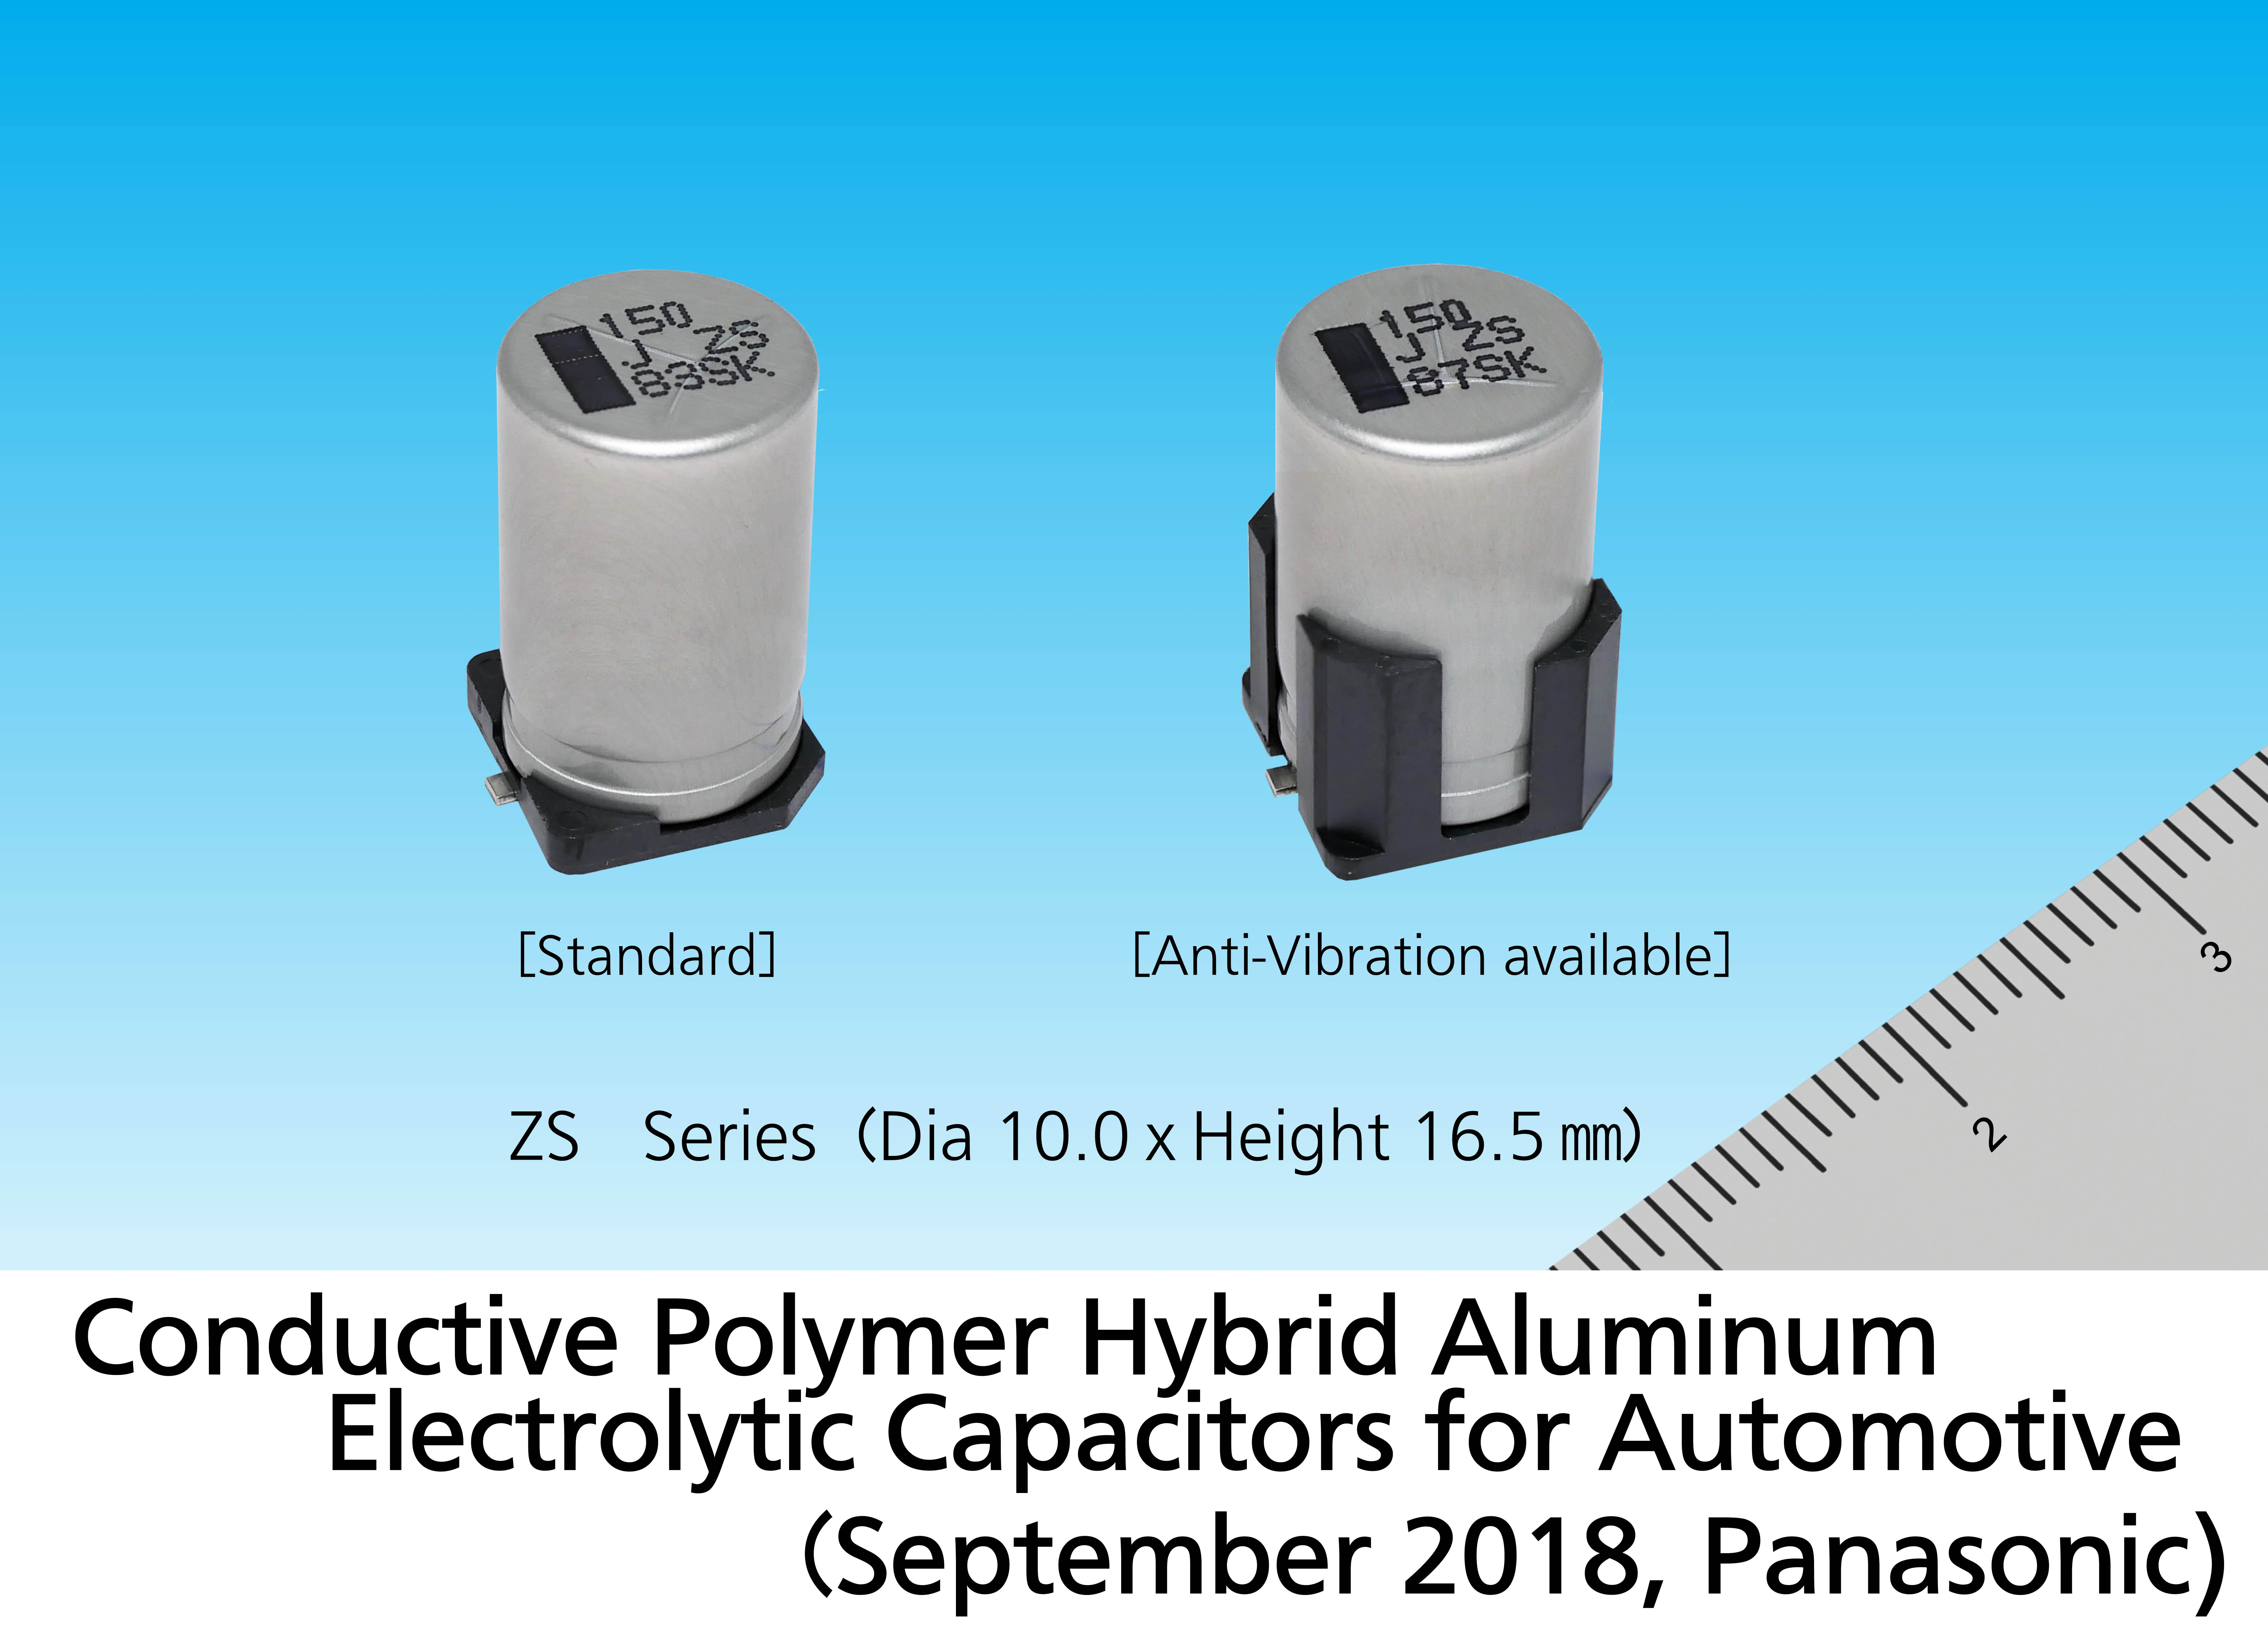 Image: ZS Series Conductive Polymer Hybrid Aluminum Electrolytic Capacitors